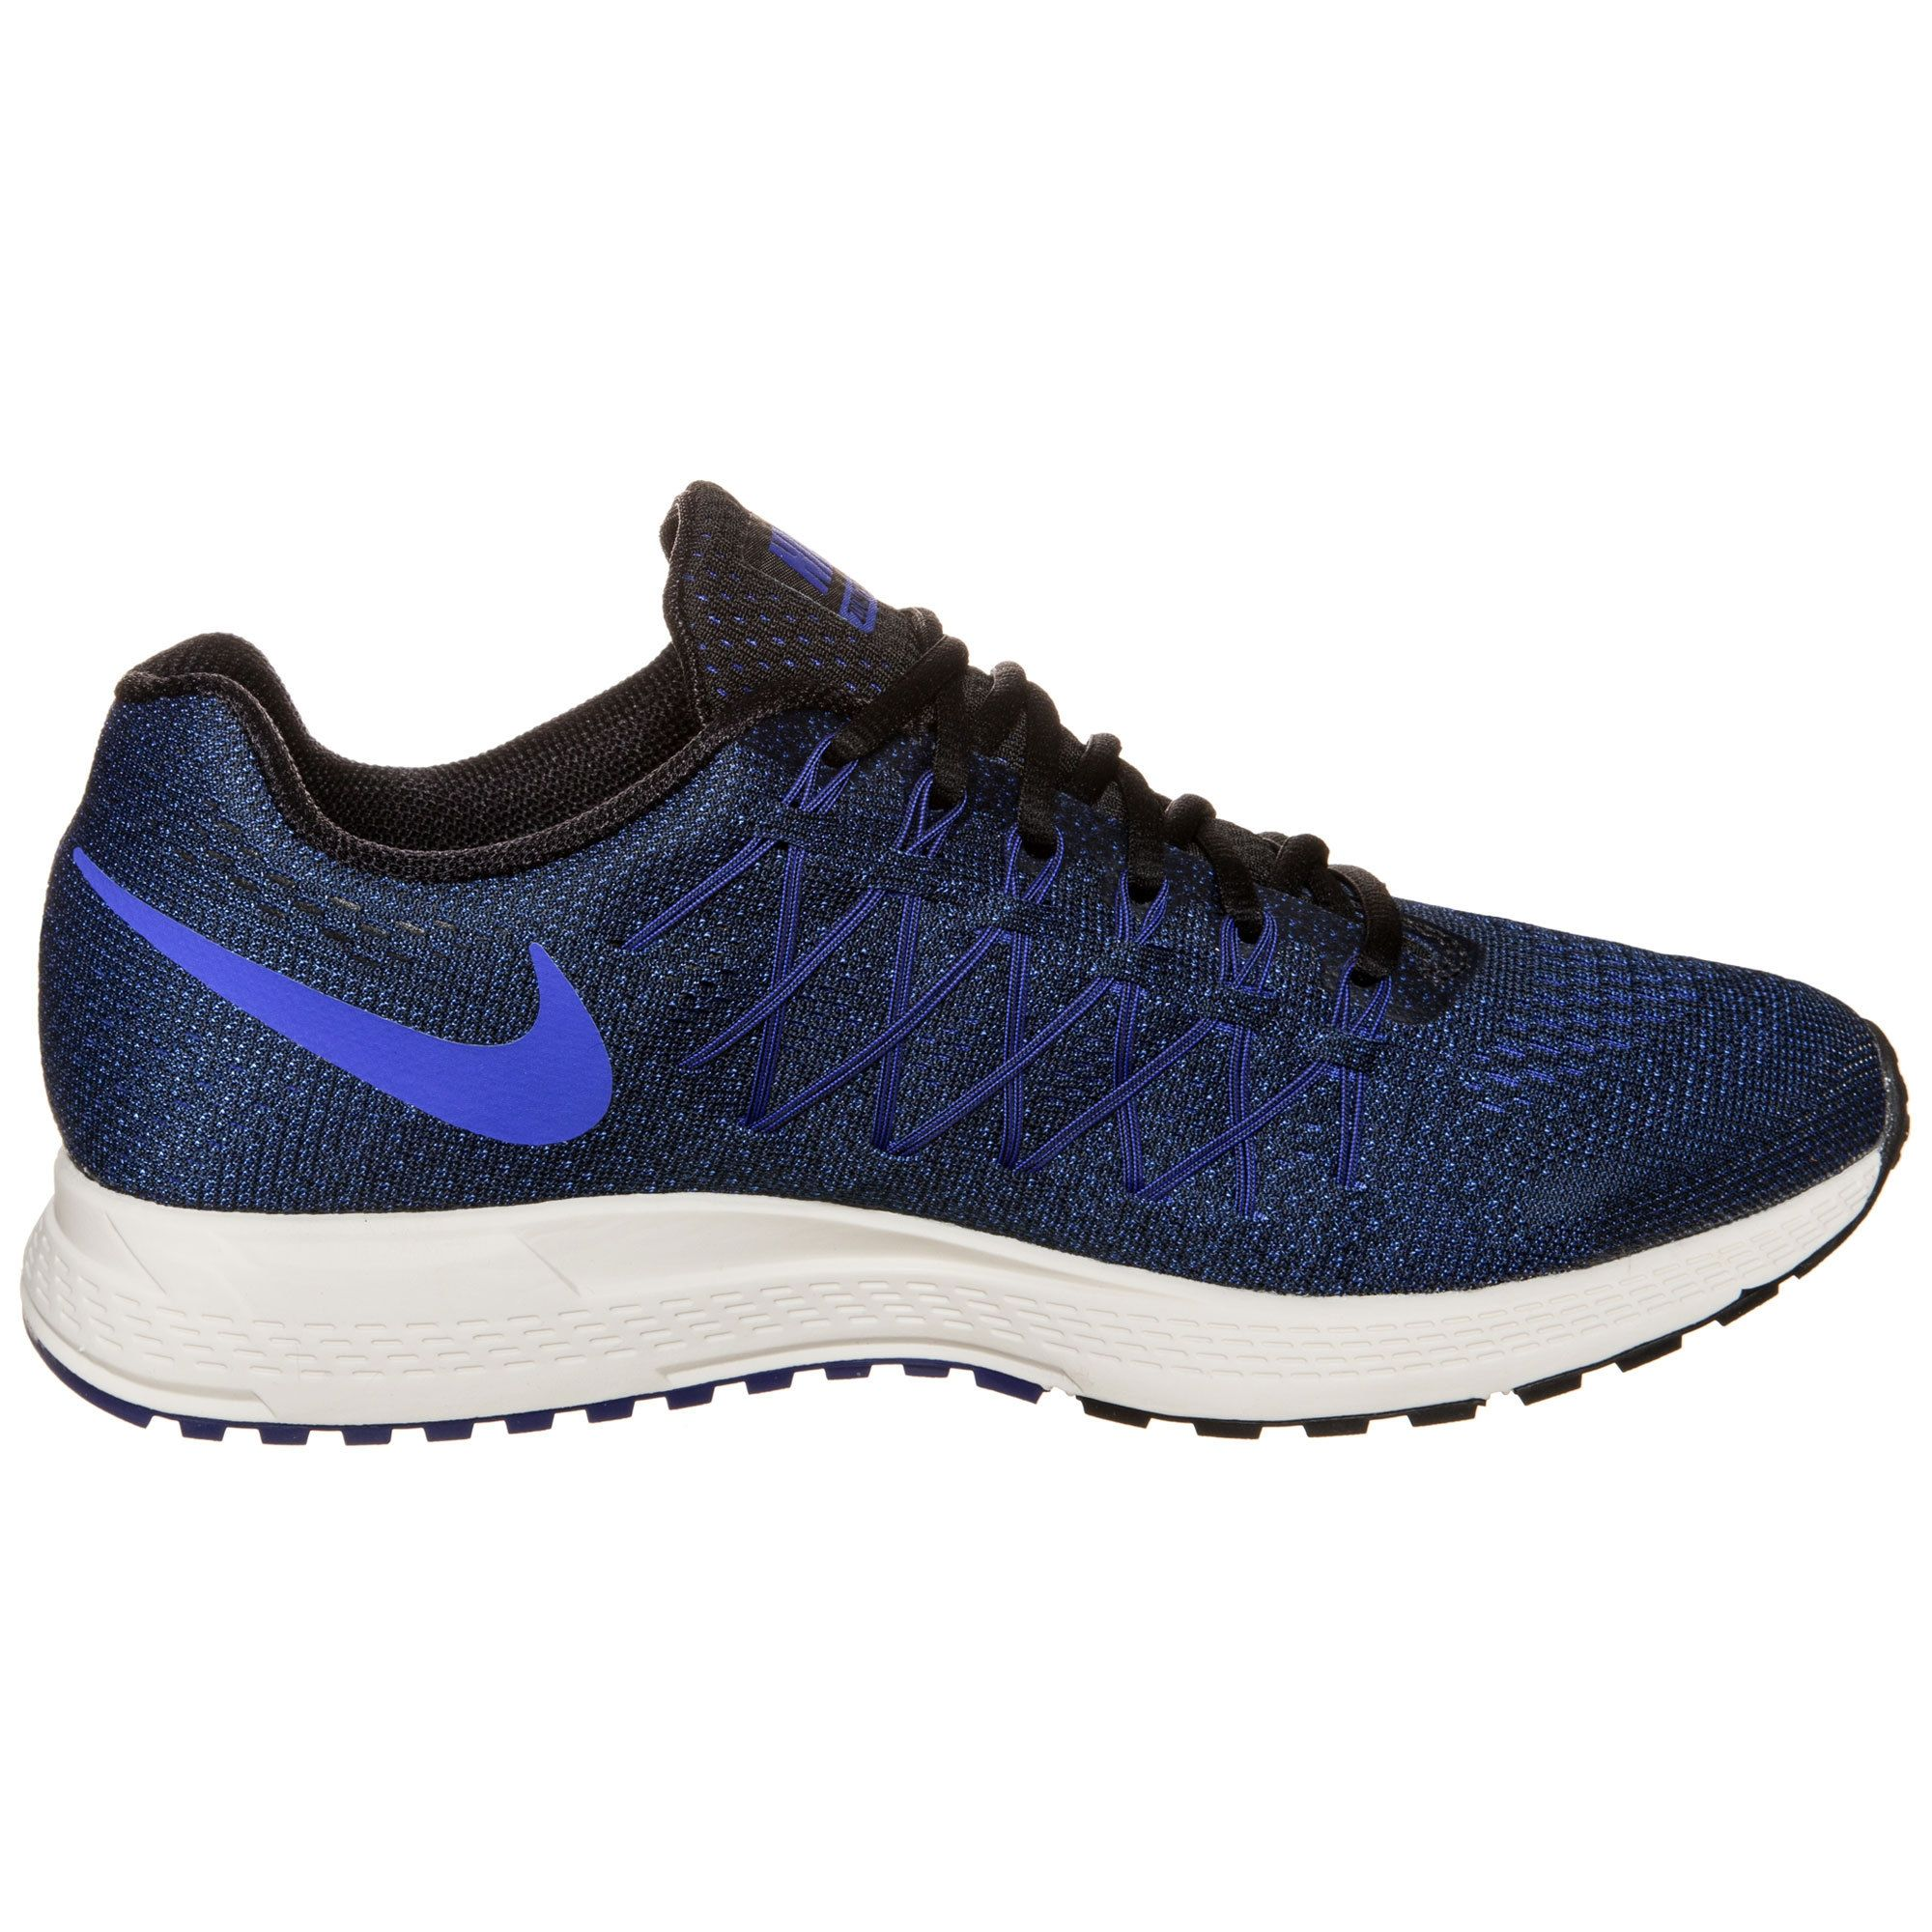 Nike Air Zoom Pegasus 32 in Blau